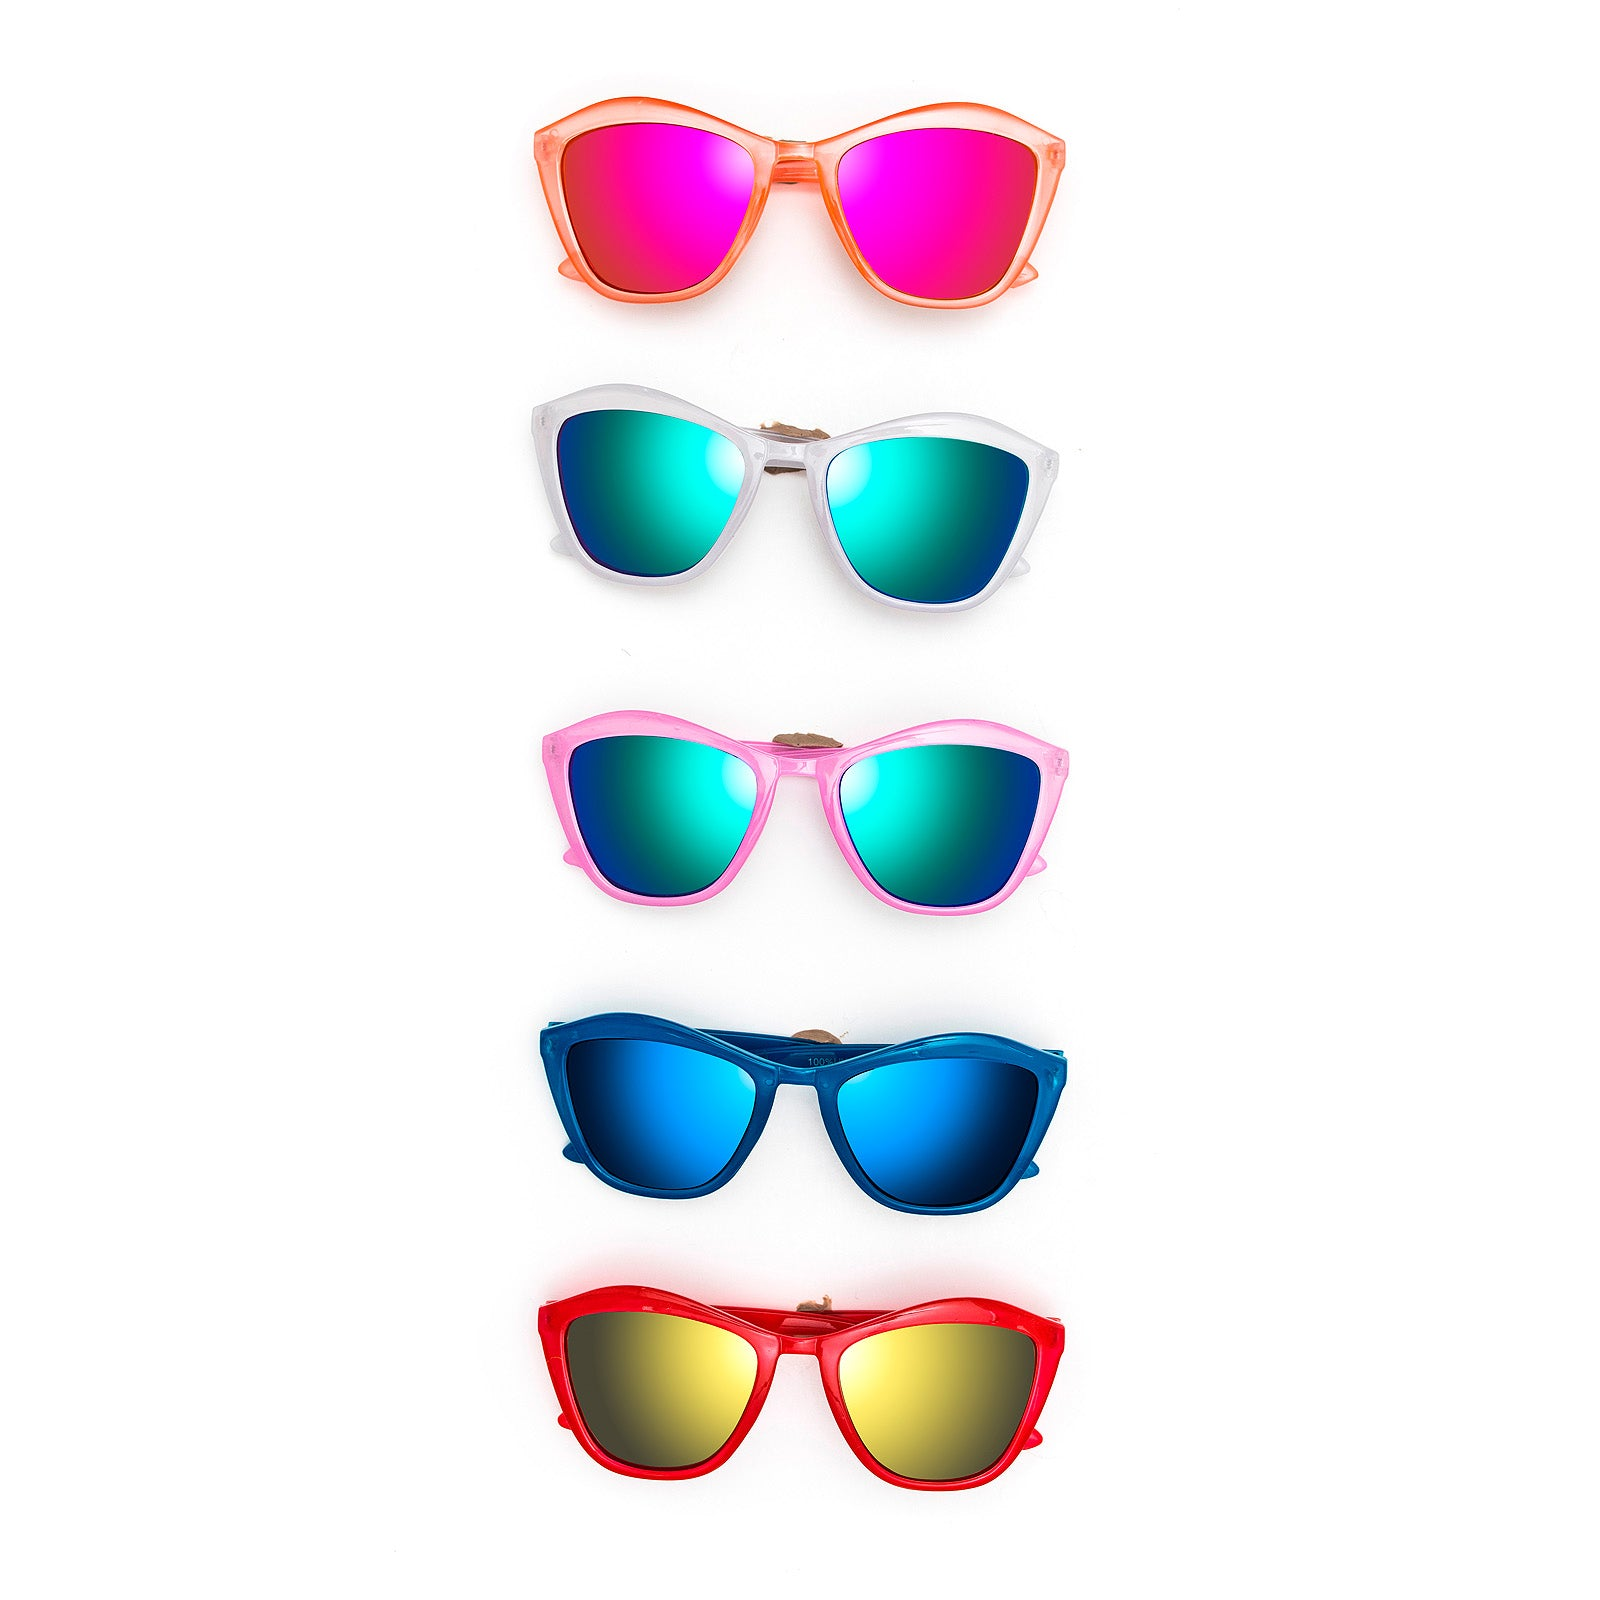 Kids Scout sunglasses